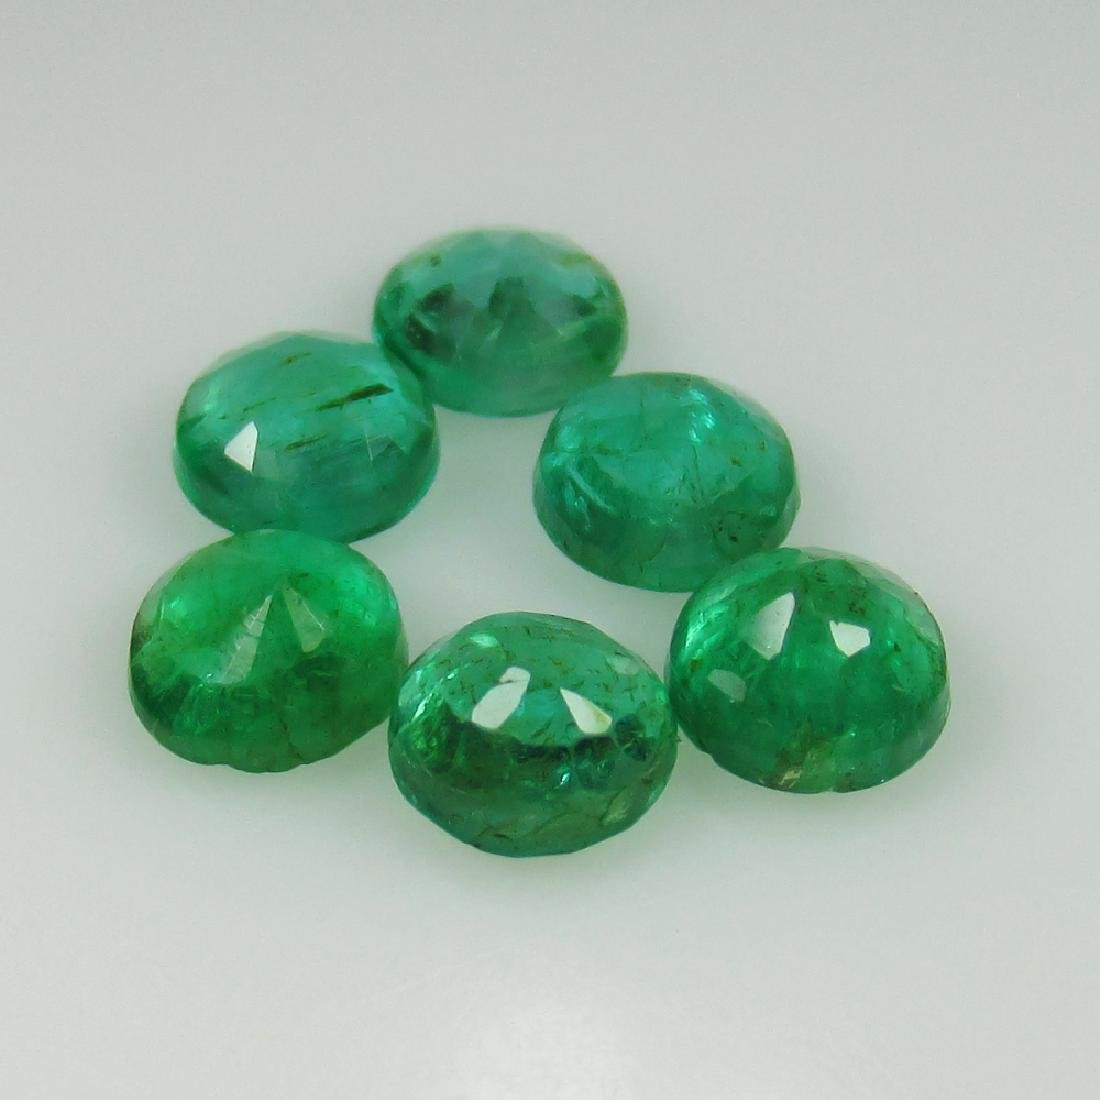 2.35 Ct Genuine Zambian Emerald Calibrate 4.7 mm - 2